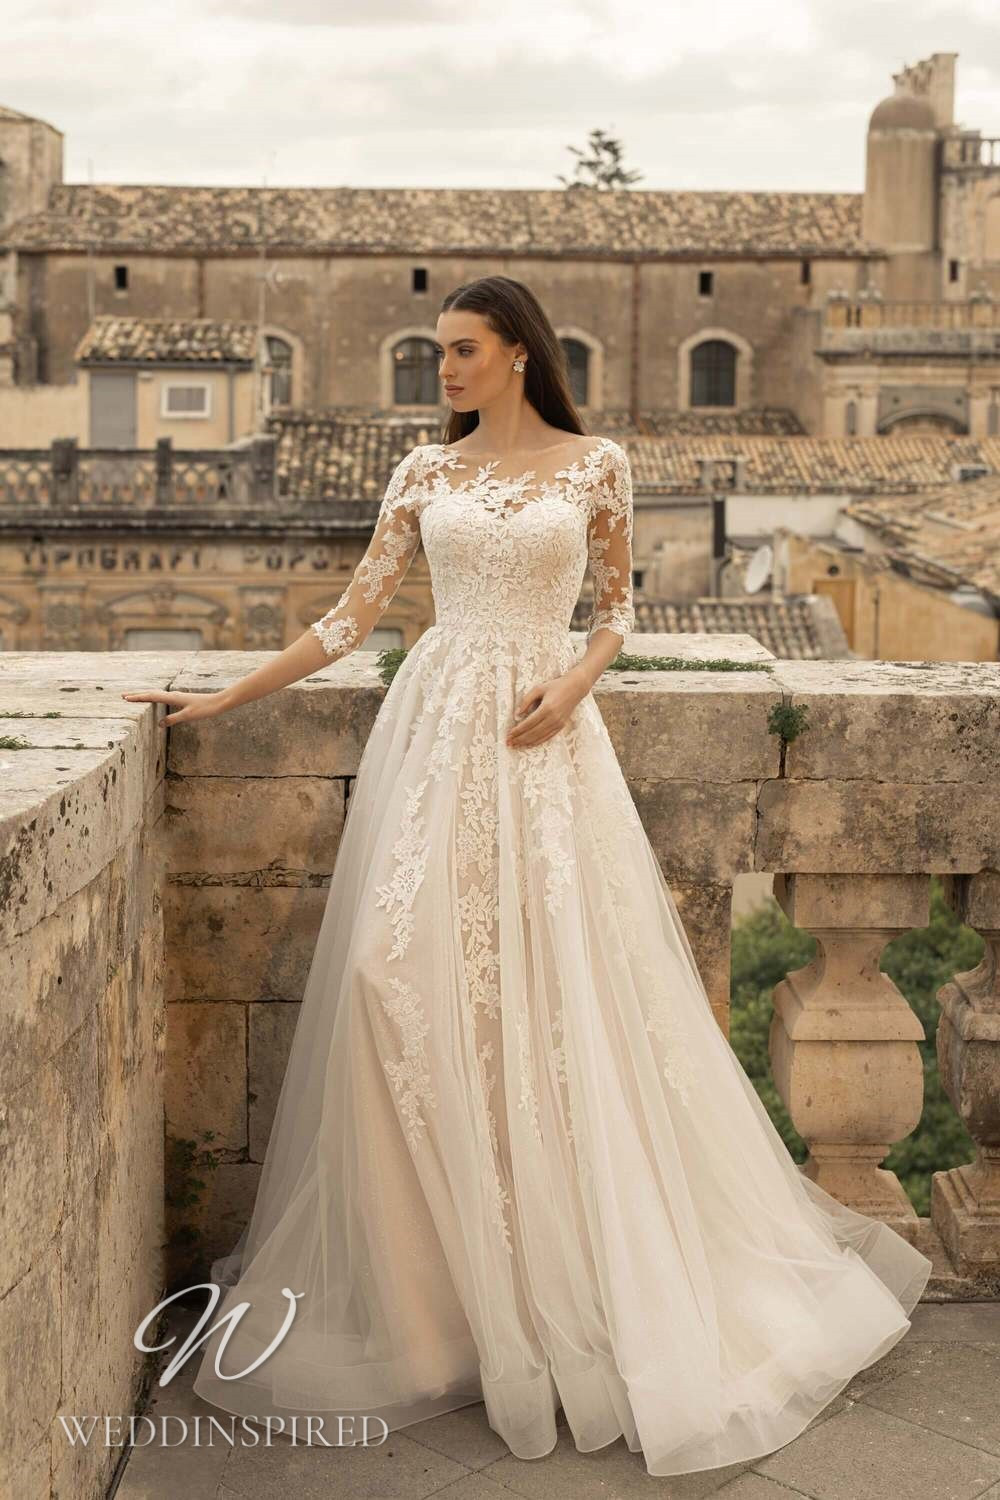 A Lussano 2021 ivory lace and tulle A-line wedding dress with half sleeves